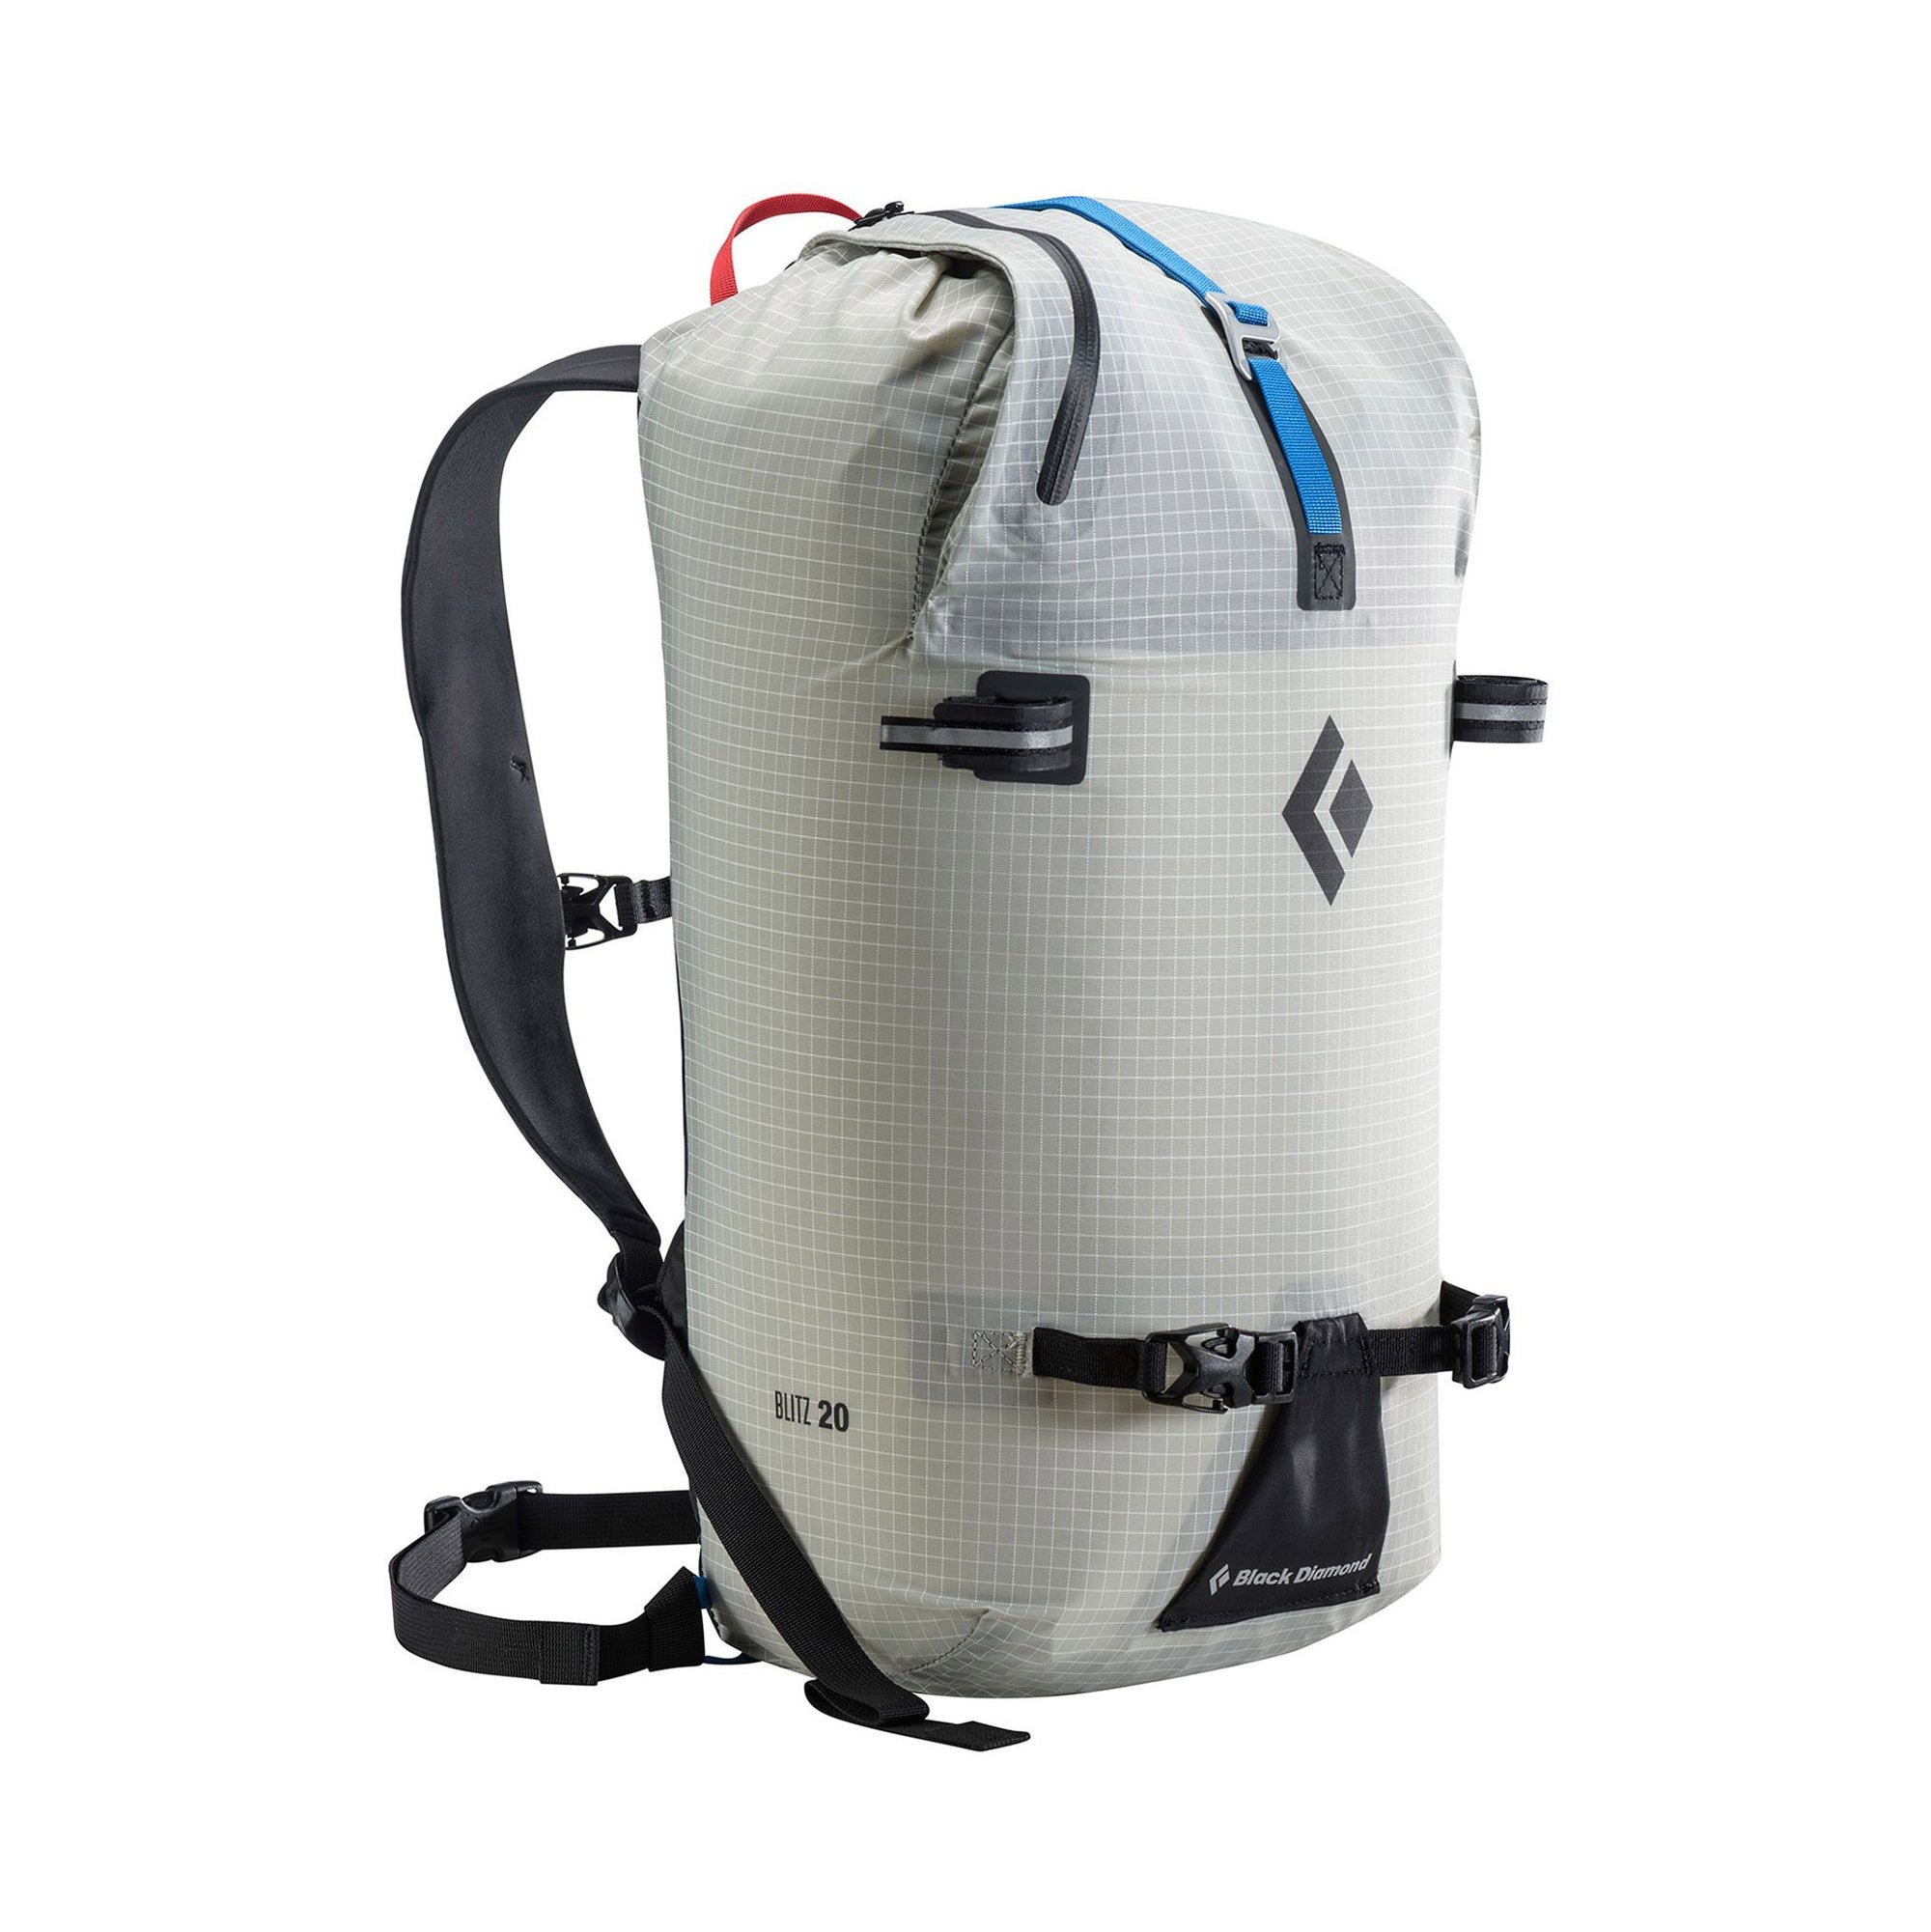 blitz pack standing upright, has rope strap, ice tool holders